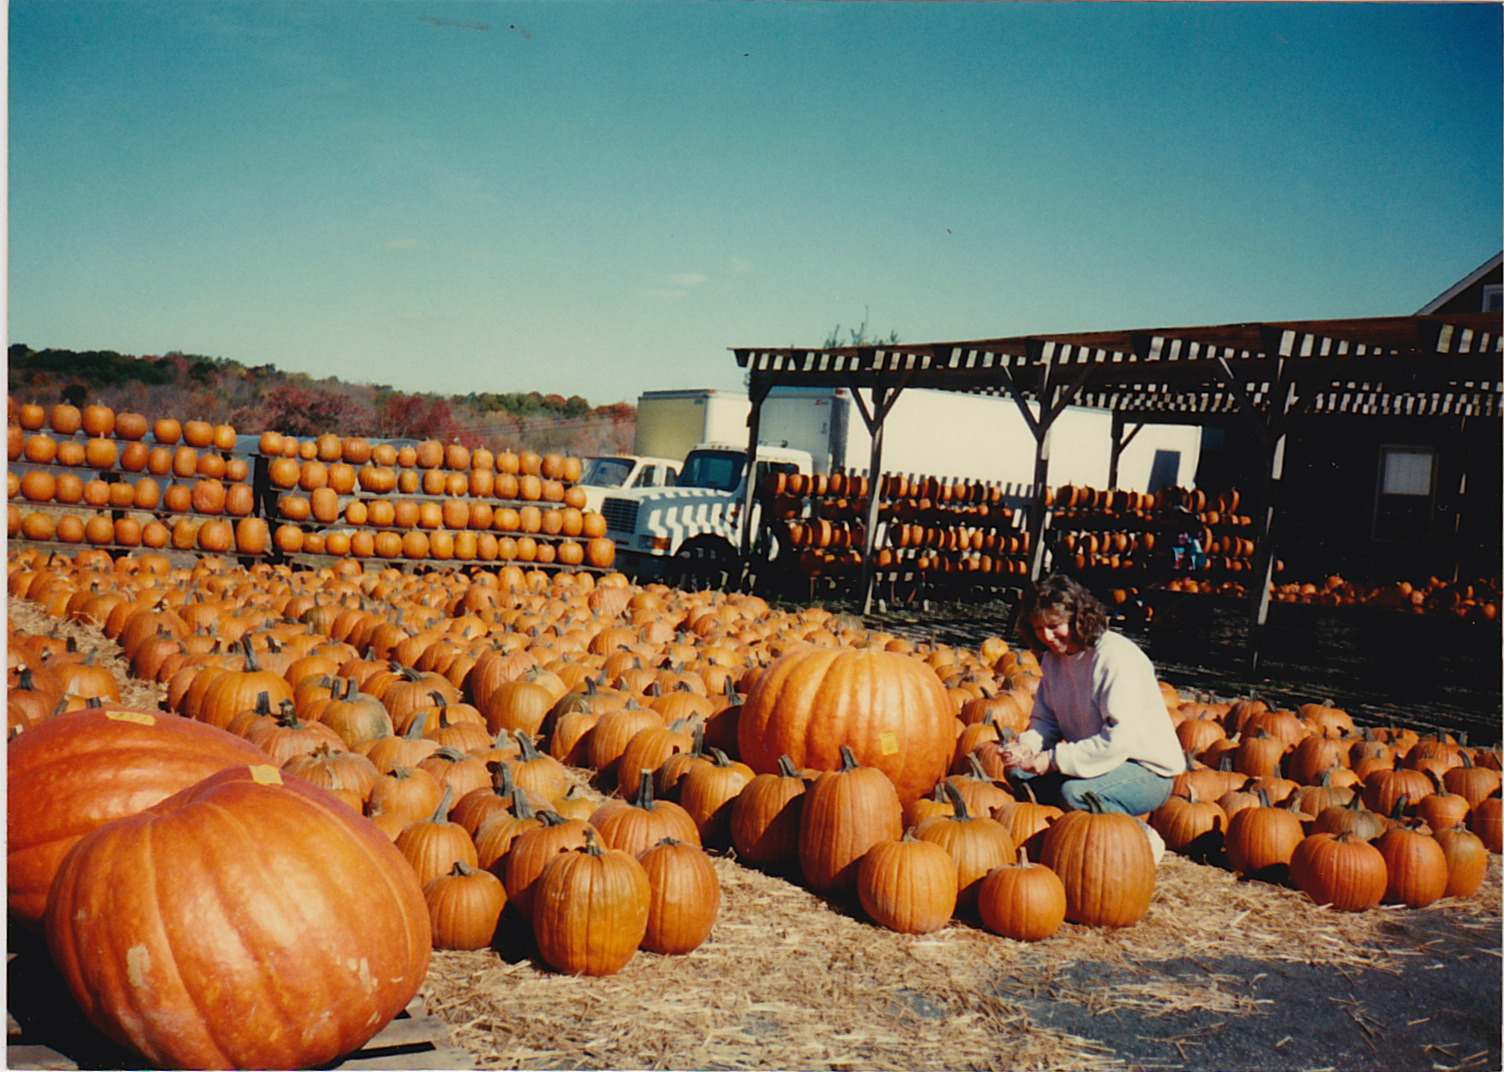 Pumpkins in the fall.